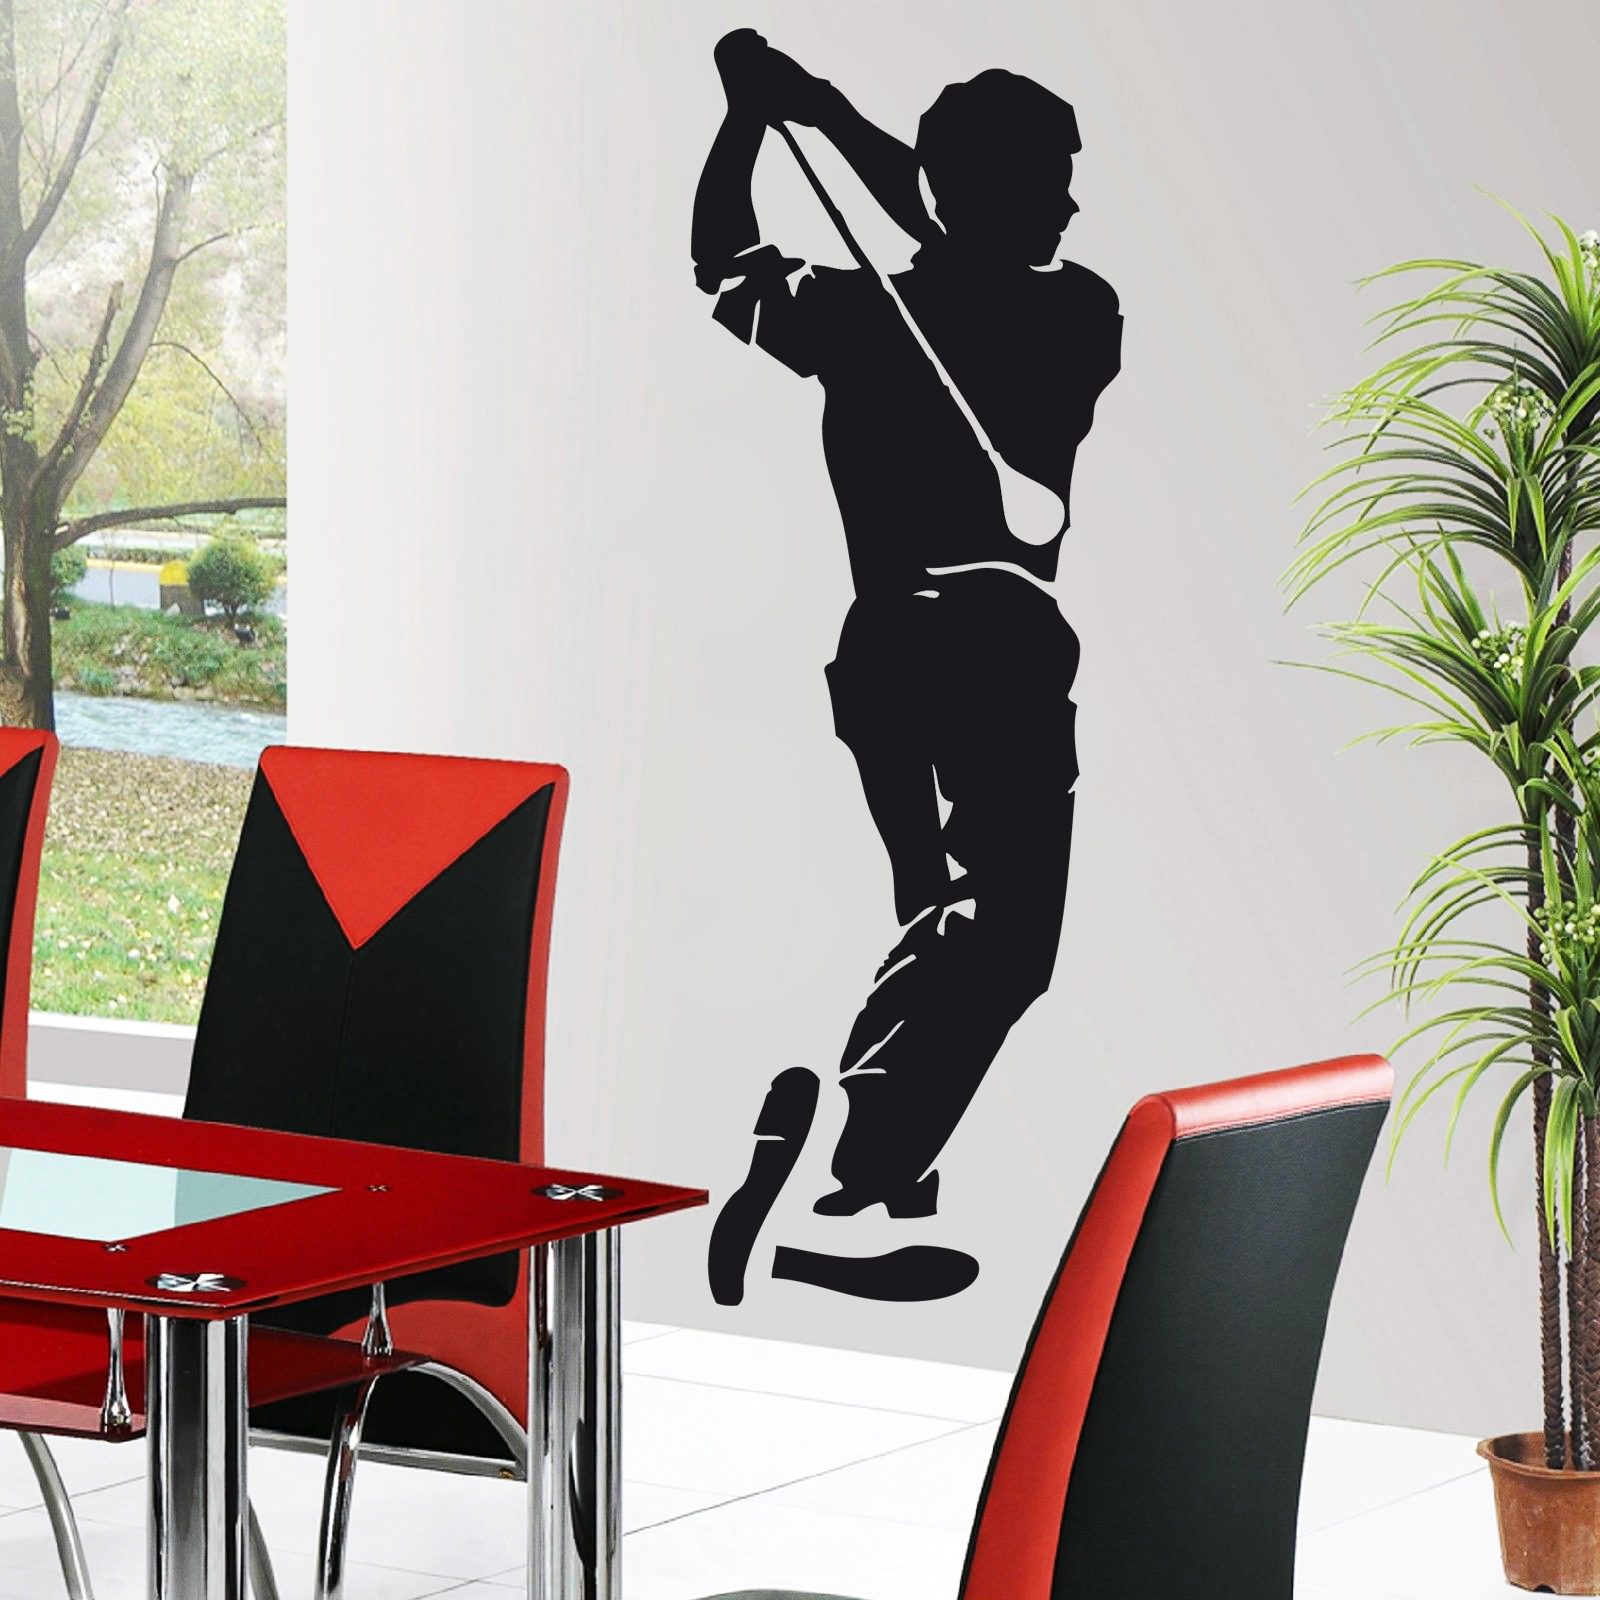 destock golf. Black Bedroom Furniture Sets. Home Design Ideas